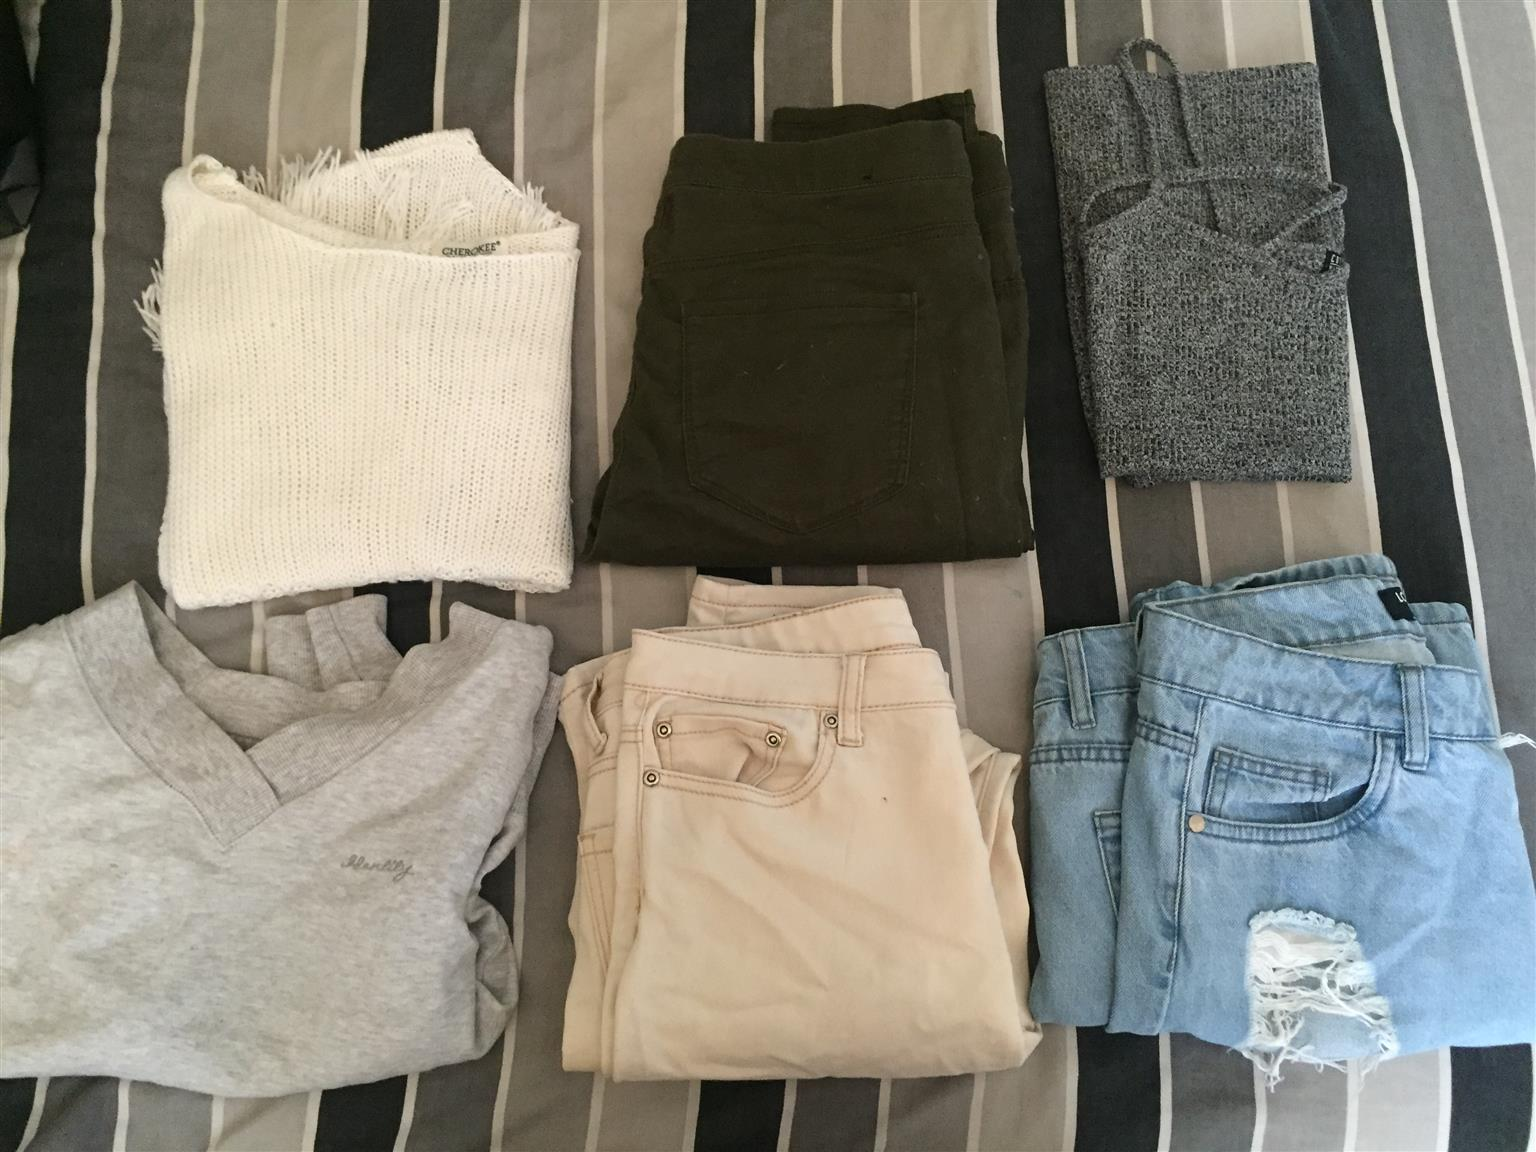 Mix and Match good condition clothing or buy it in groups